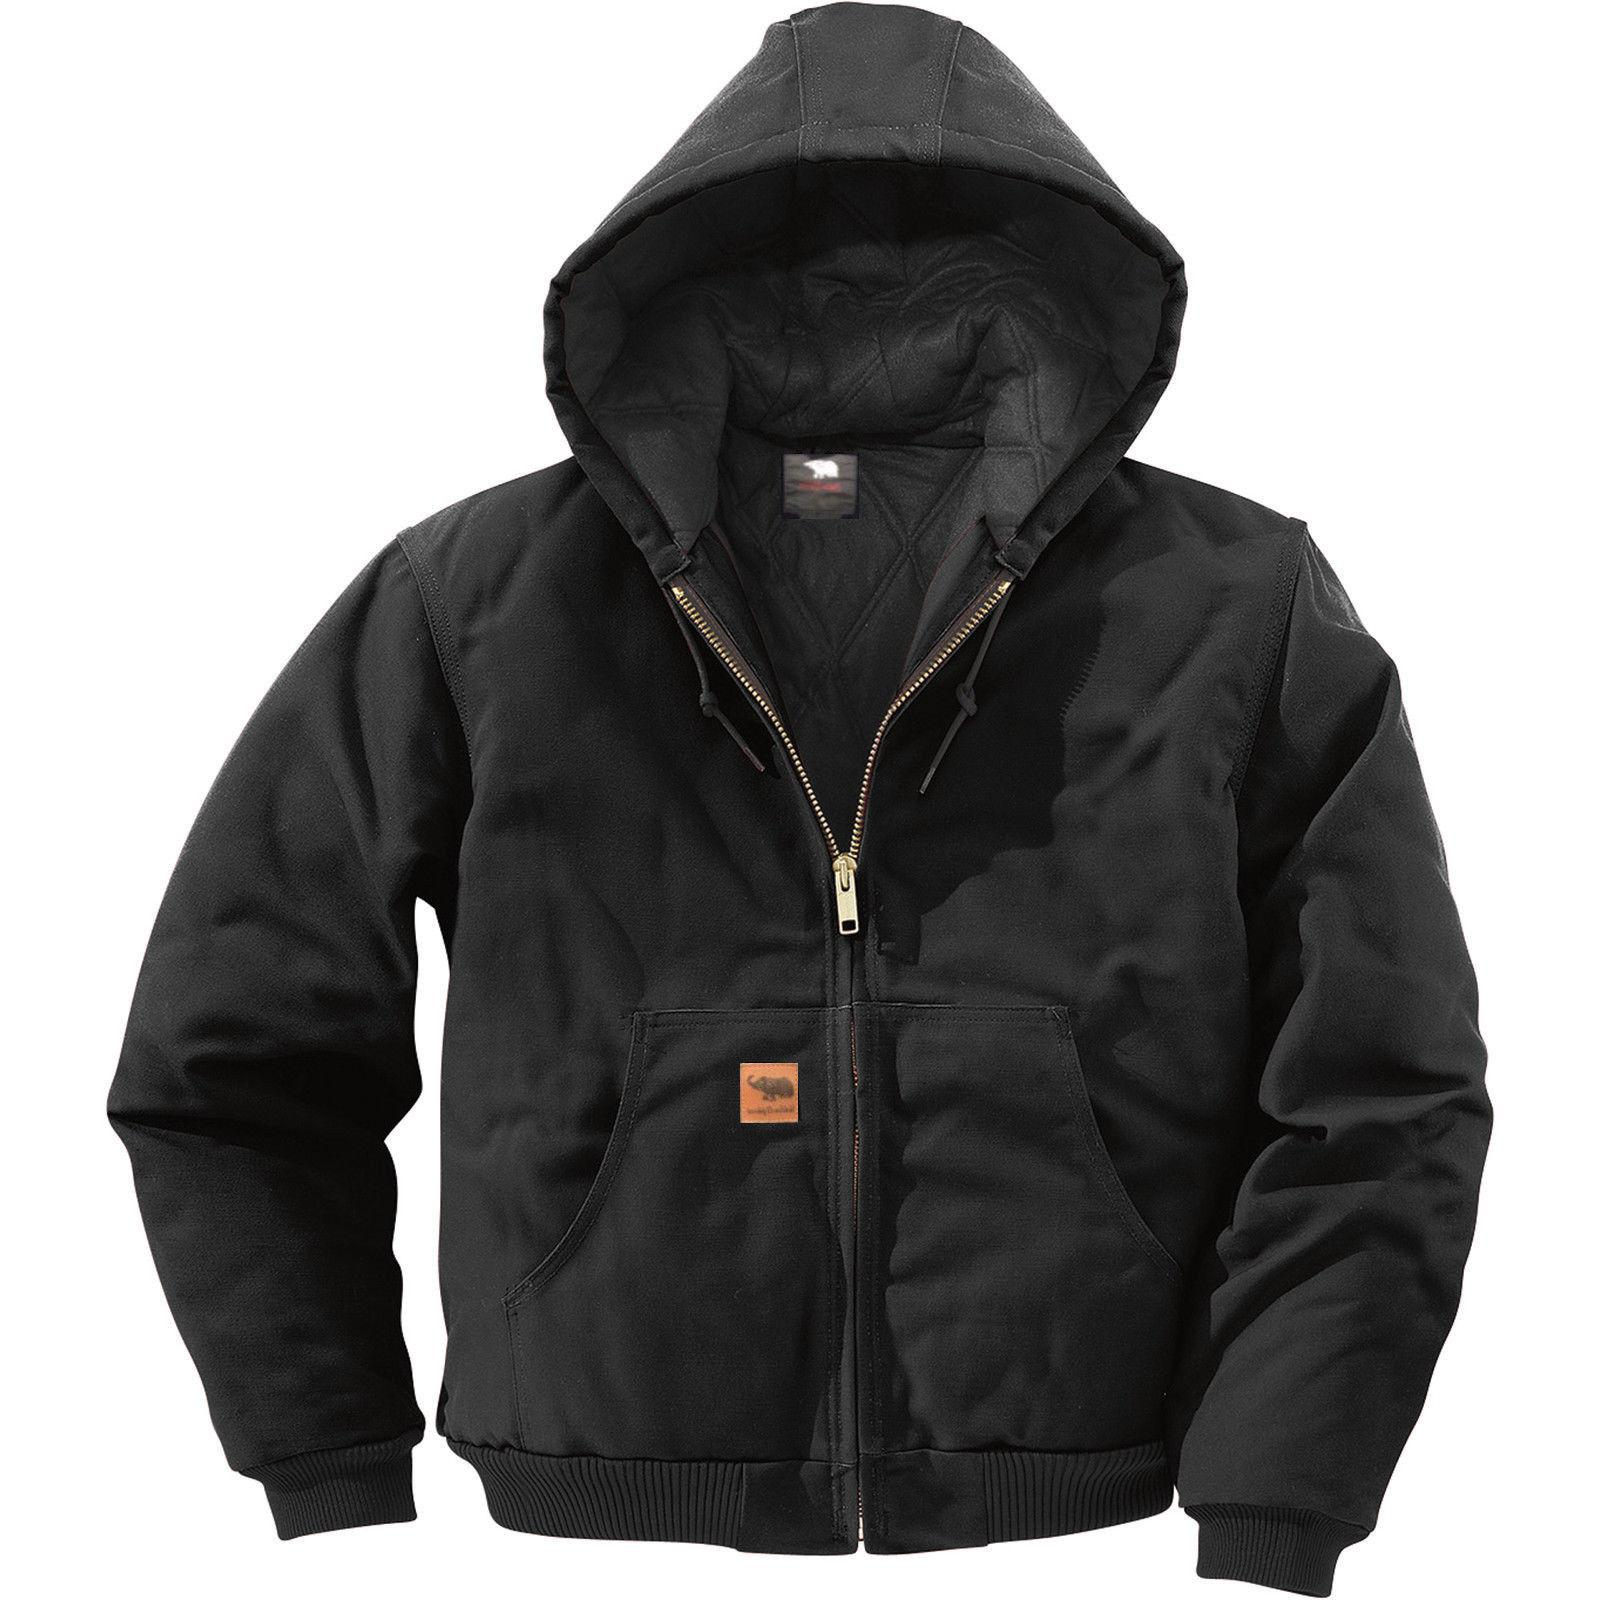 Men Sandstone Thermal Lined Industrial Winter